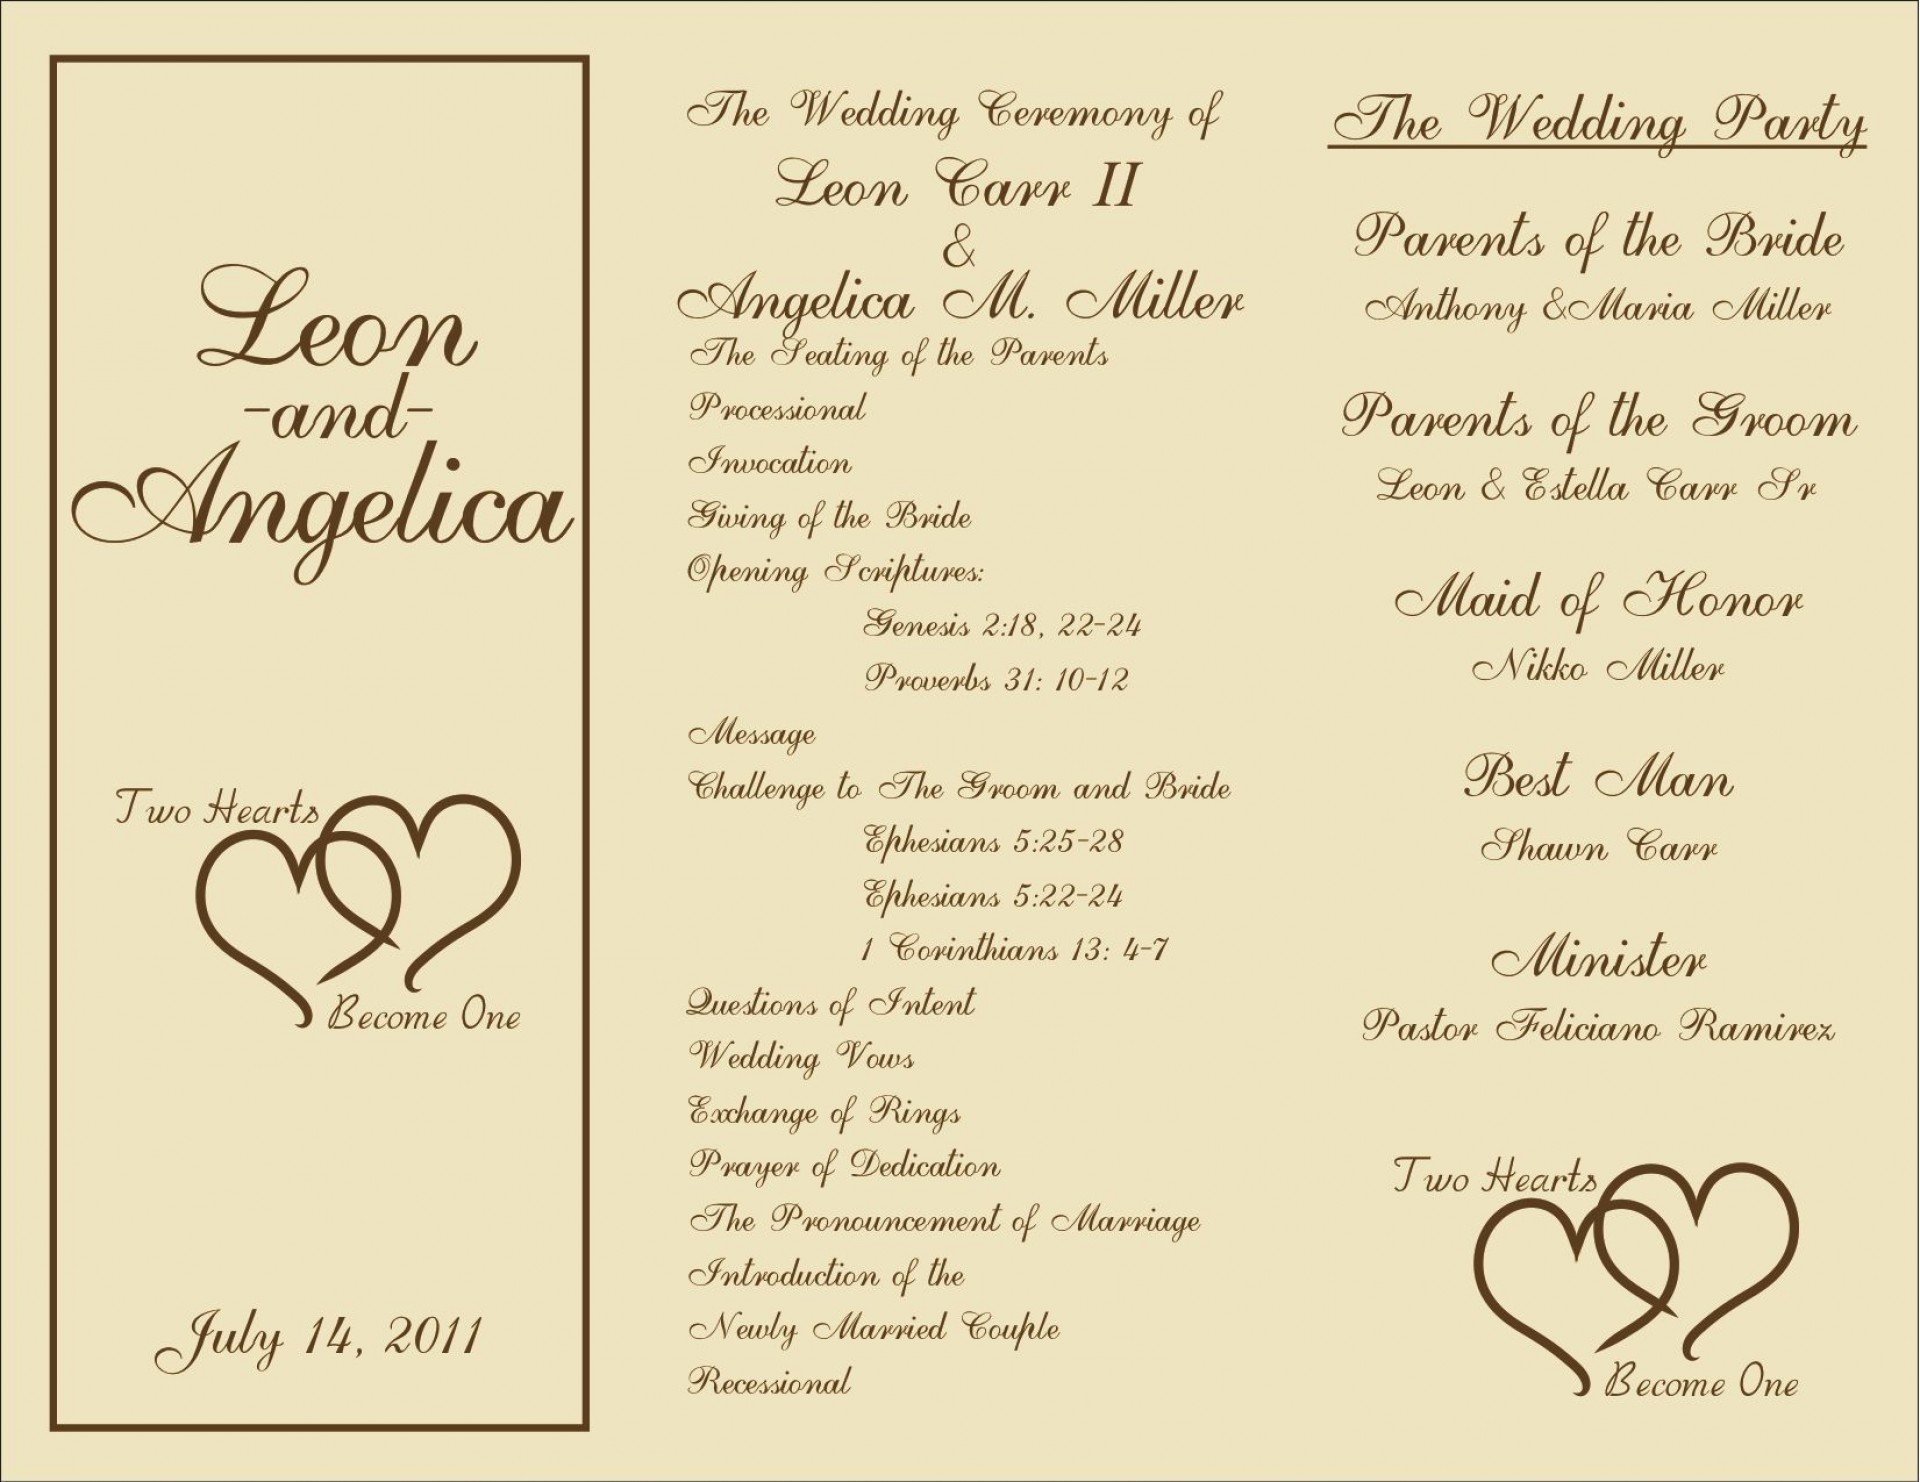 005 Wonderful Free Wedding Ceremony Program Template Picture  Catholic Download1920